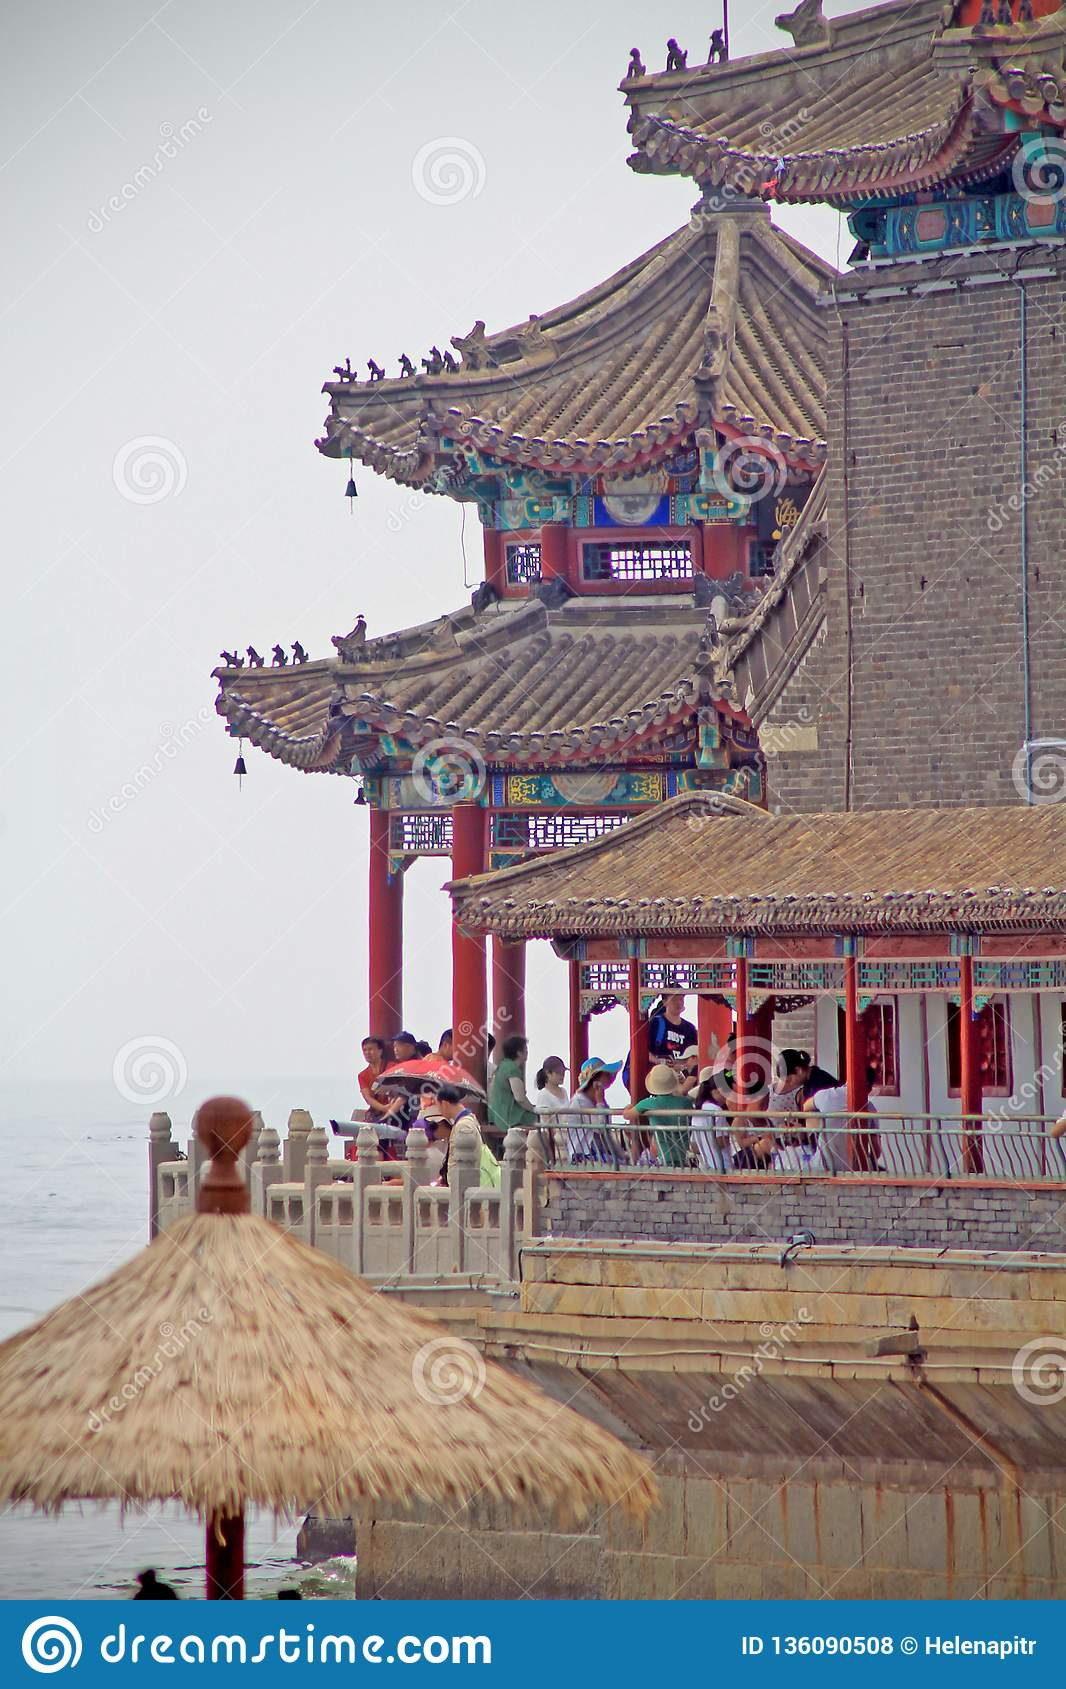 The end of a Chinese pier